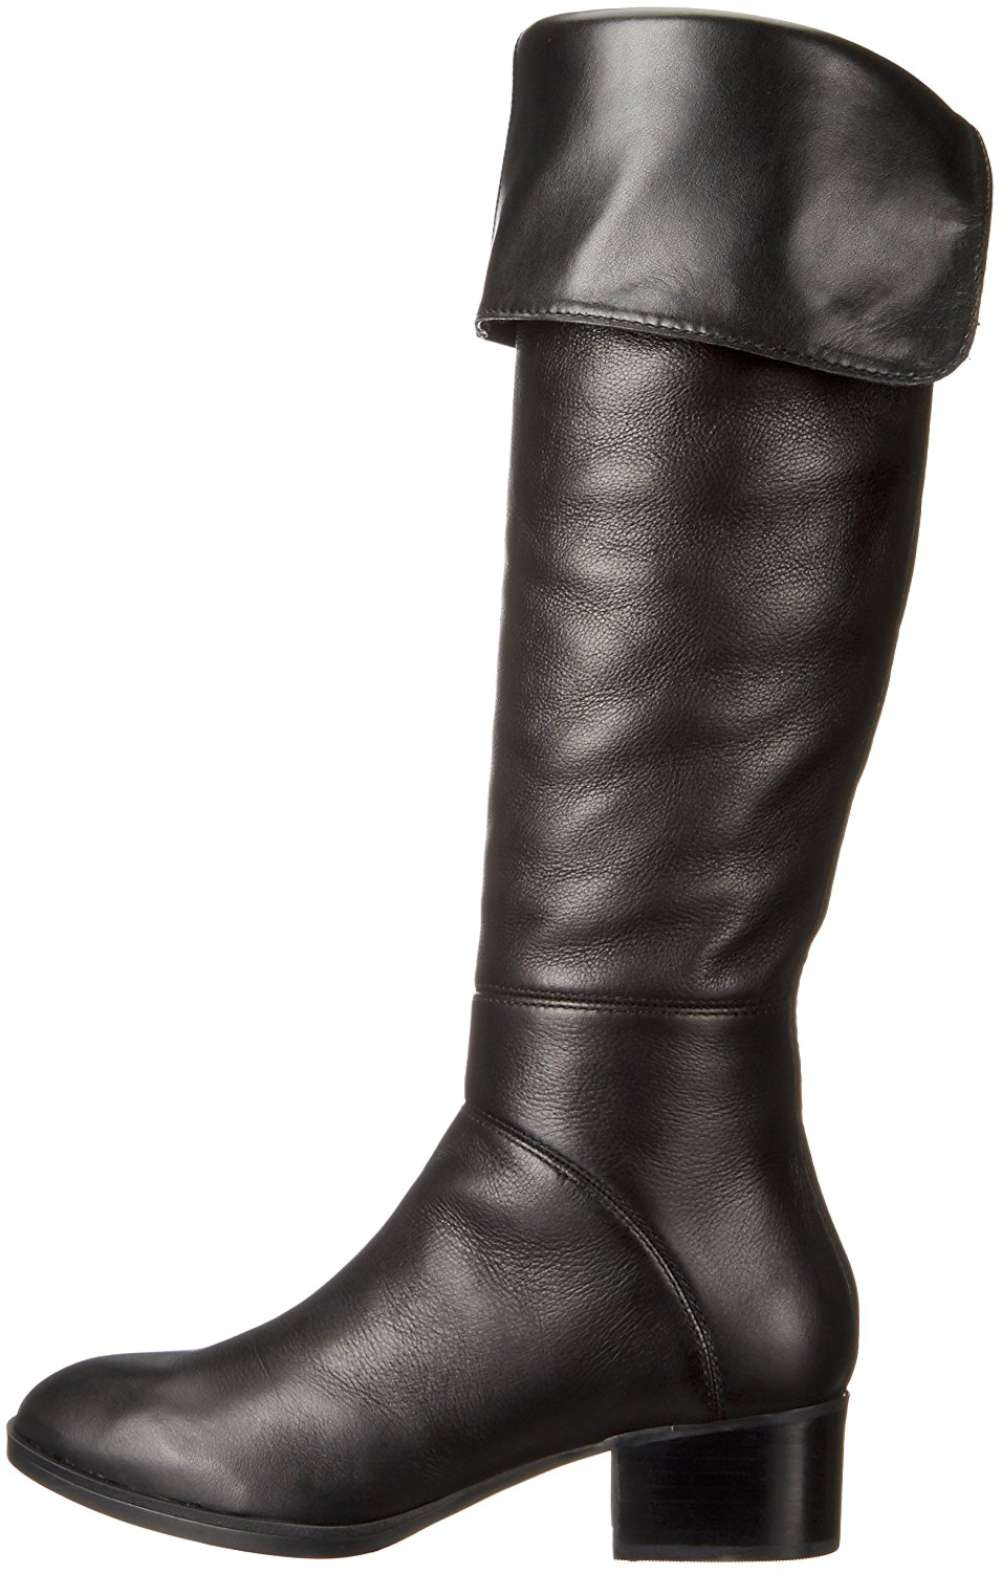 Tommy Hilfiger Women S Boots Sears